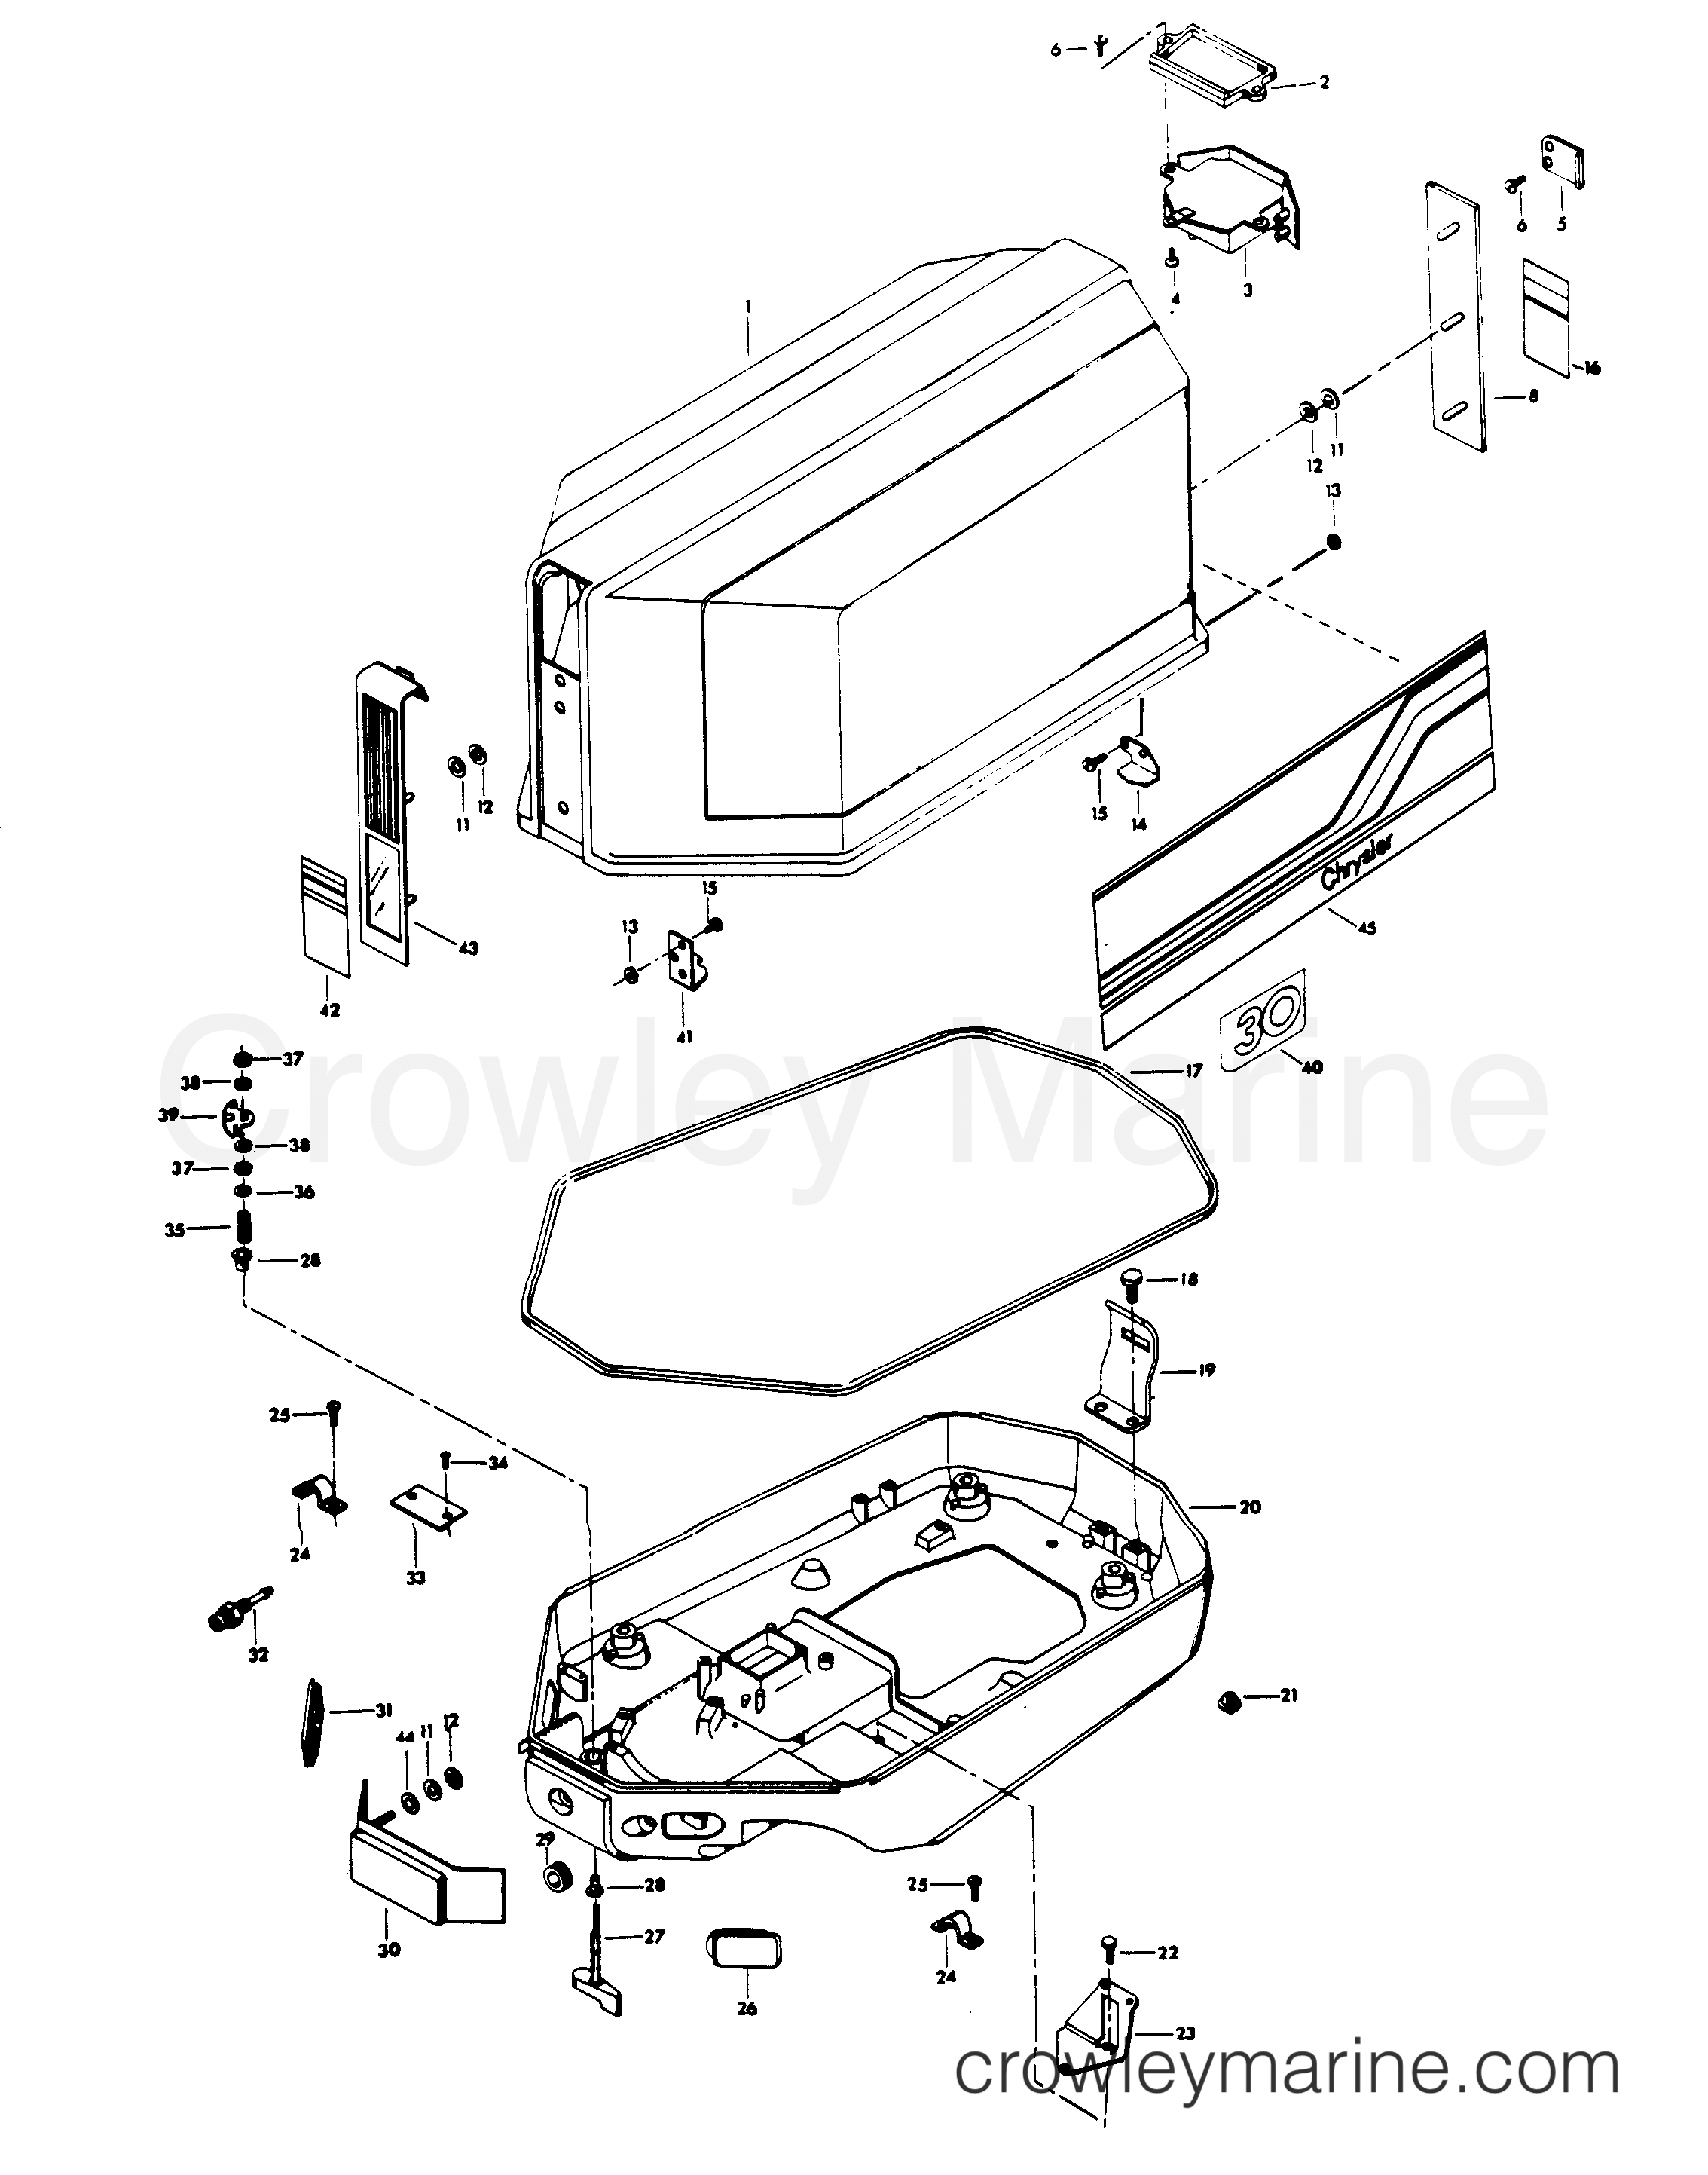 engine cover and support plate  alternator models